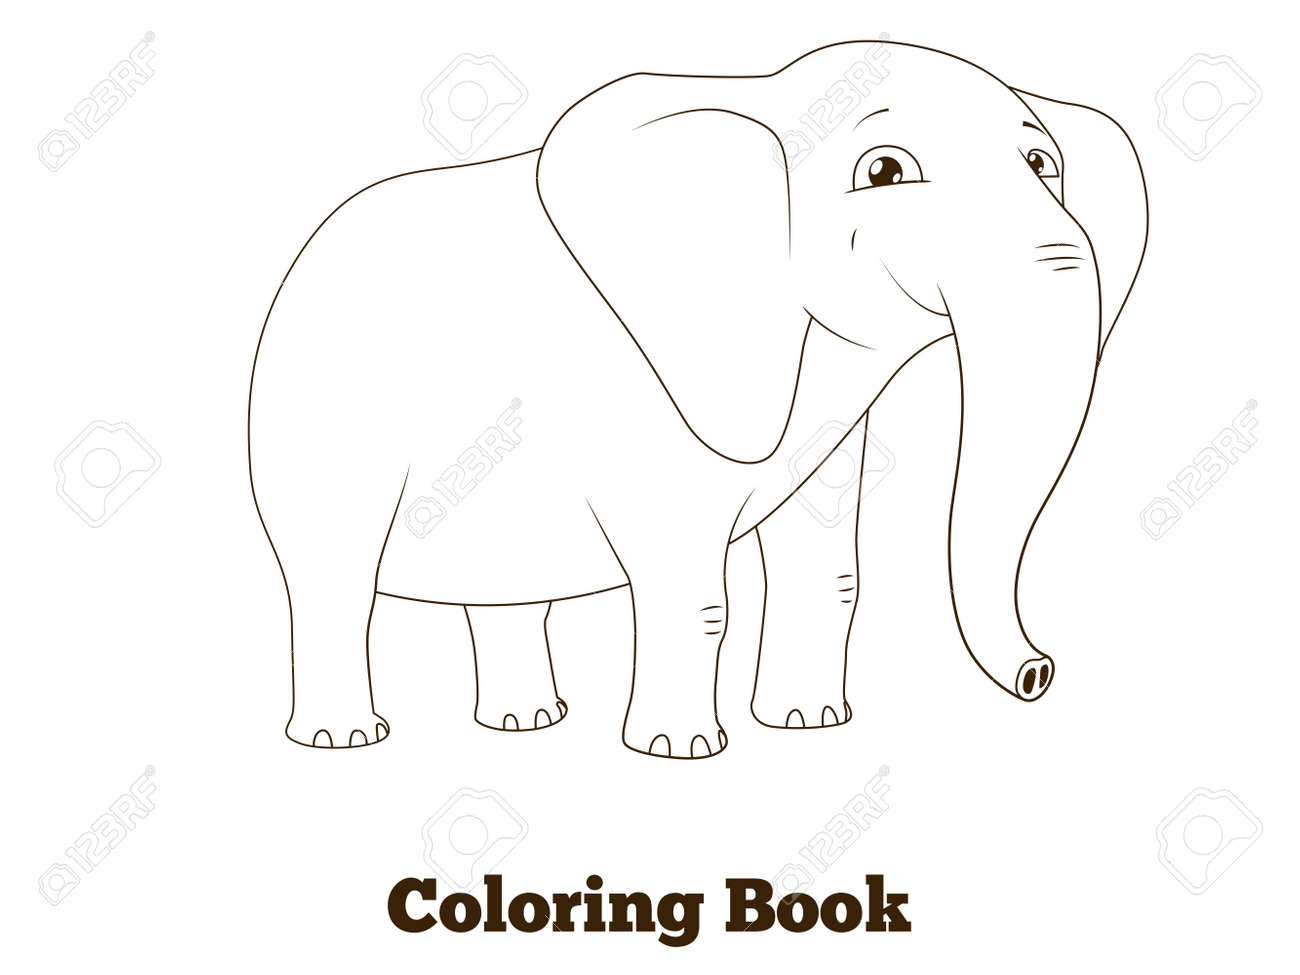 Coloring Book Elephant African Animal Cartoon Educational Vector ...